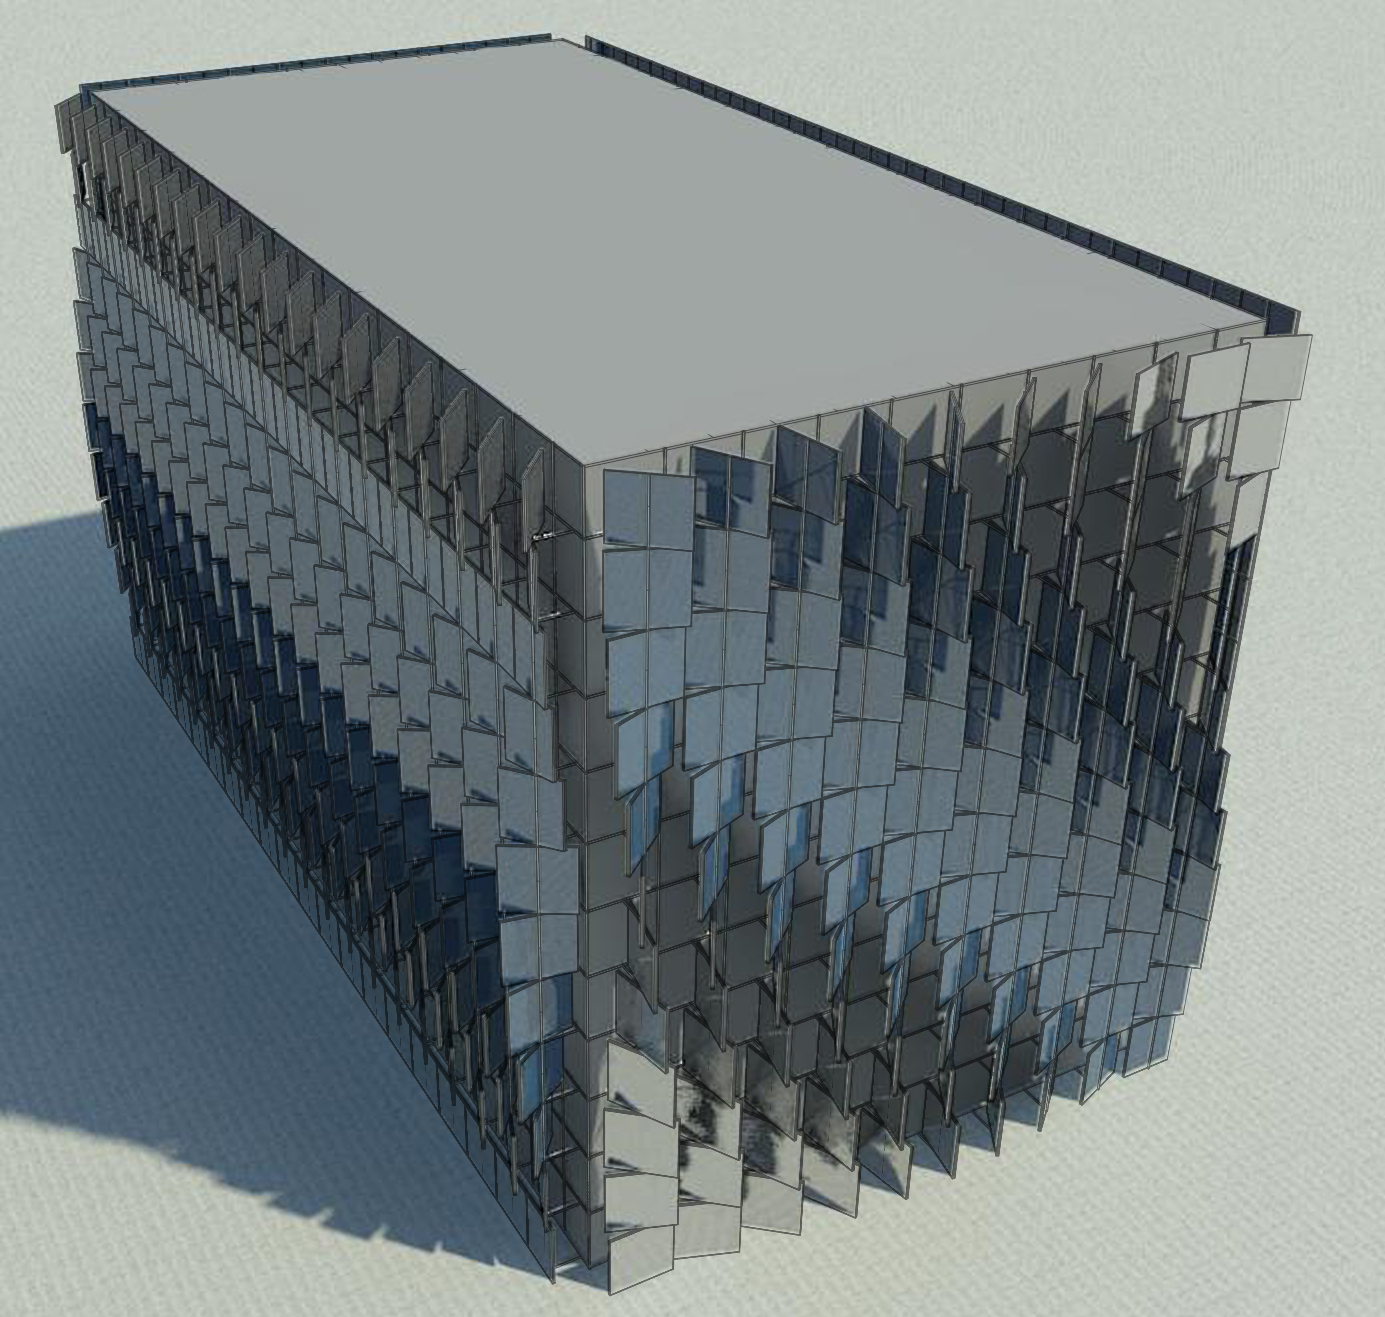 Curtain wall panel - Curtain Panels Set At 20 Intervals In Different Patterns